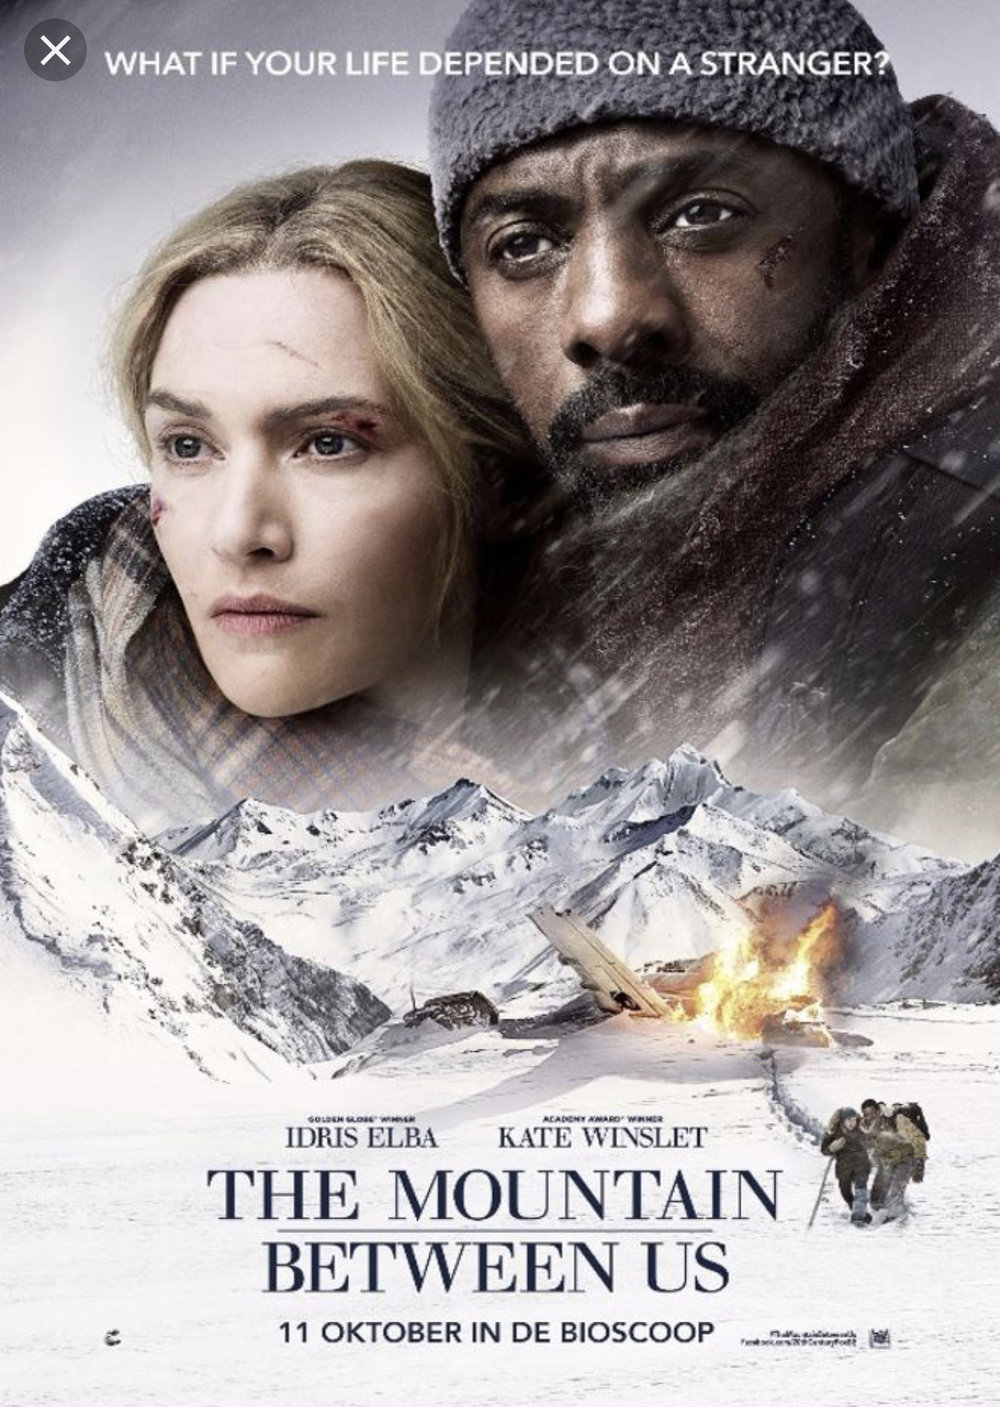 THE MOUNTAIN BETWEEN